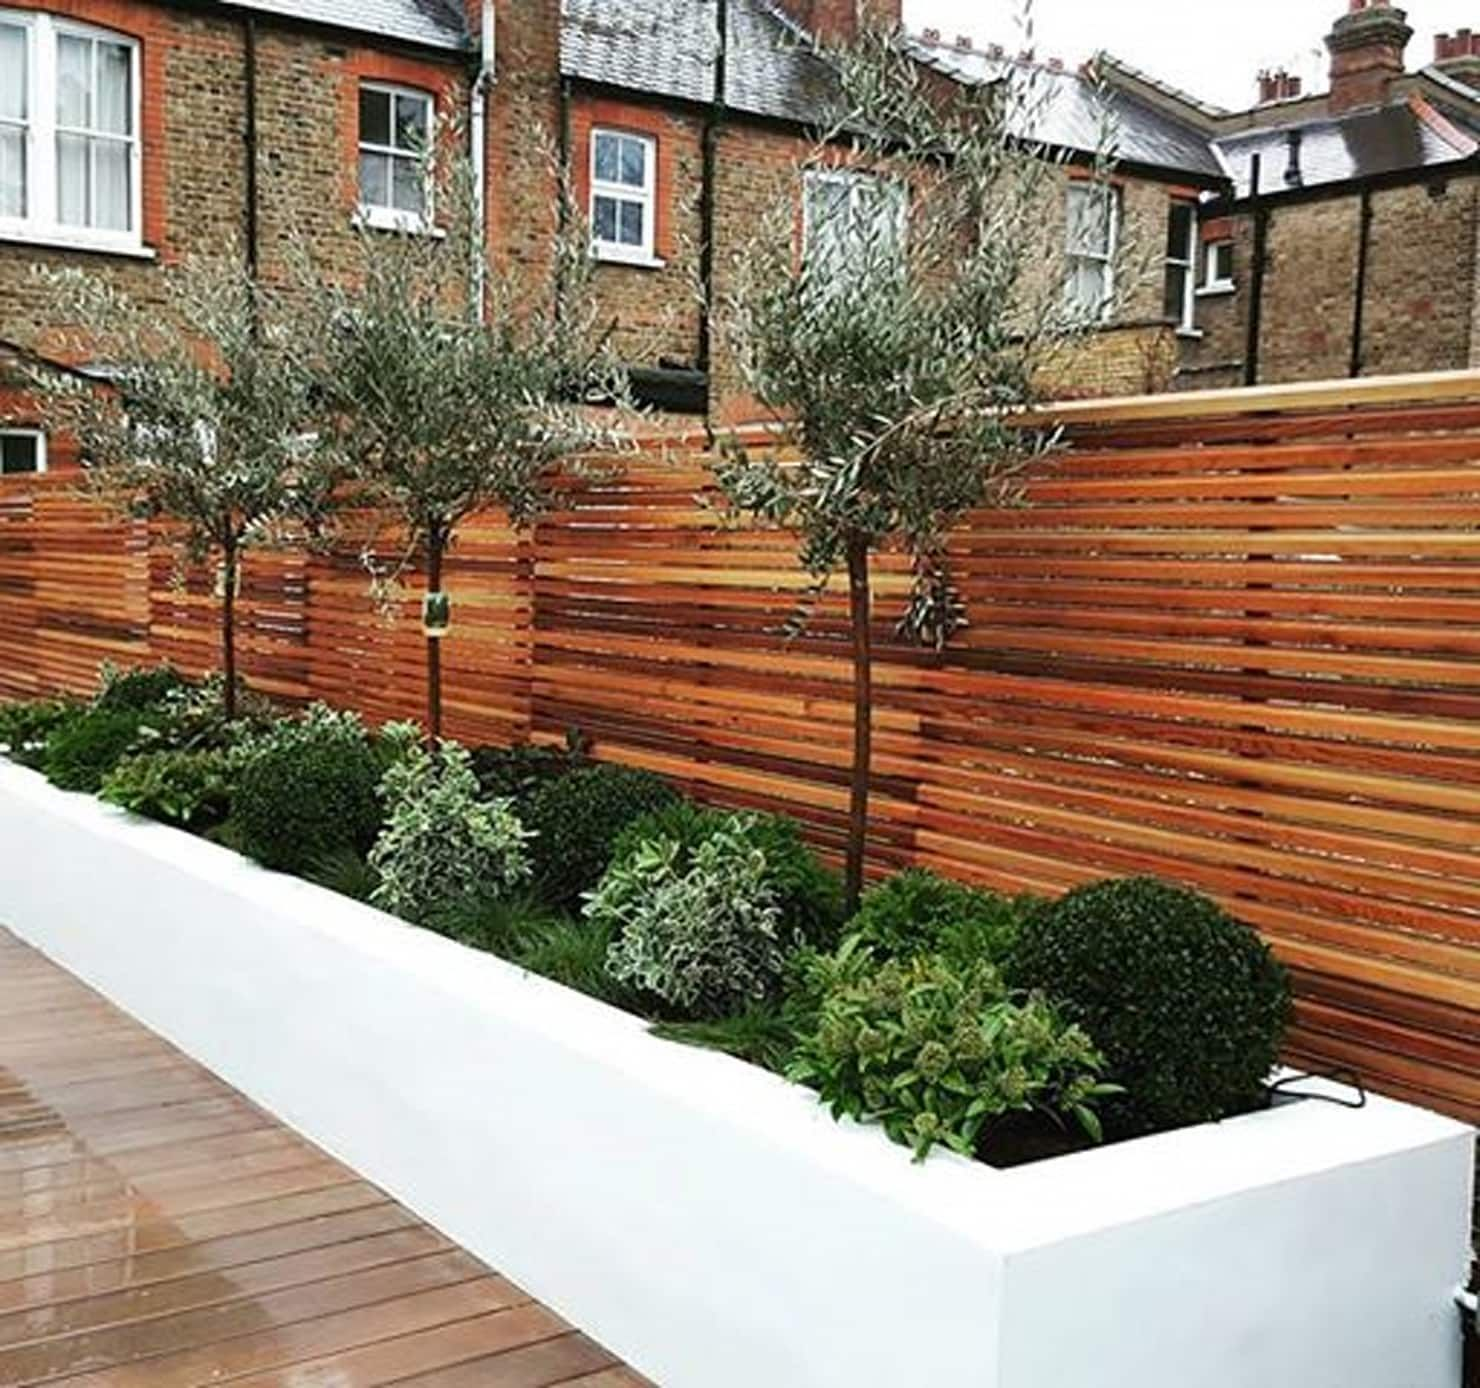 Small garden fence Raised flower beds and ever greens by